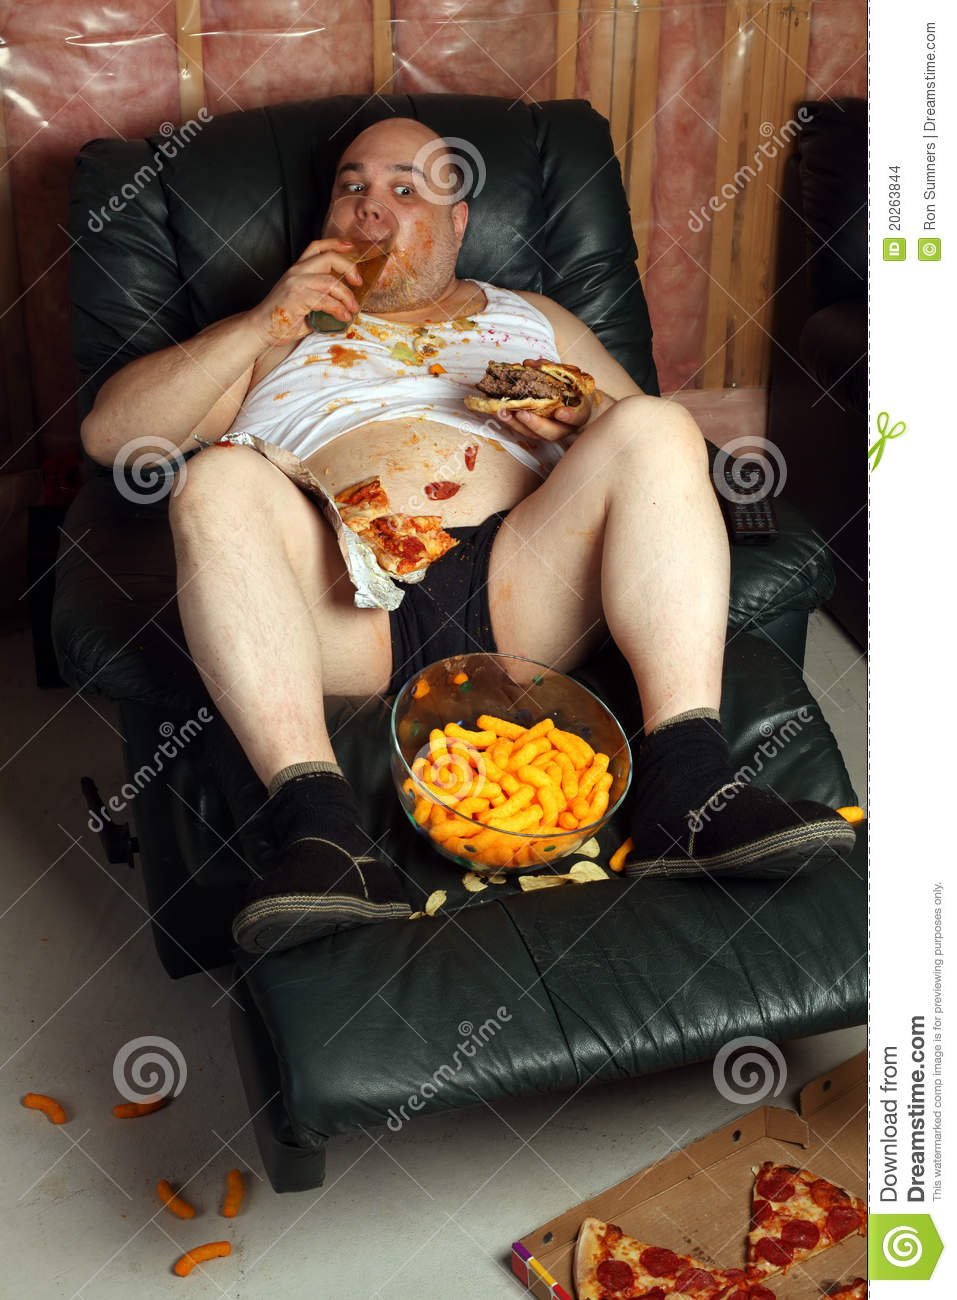 chair design program room chairs designs hamburger eating lazy couch potato stock images - image: 20263844